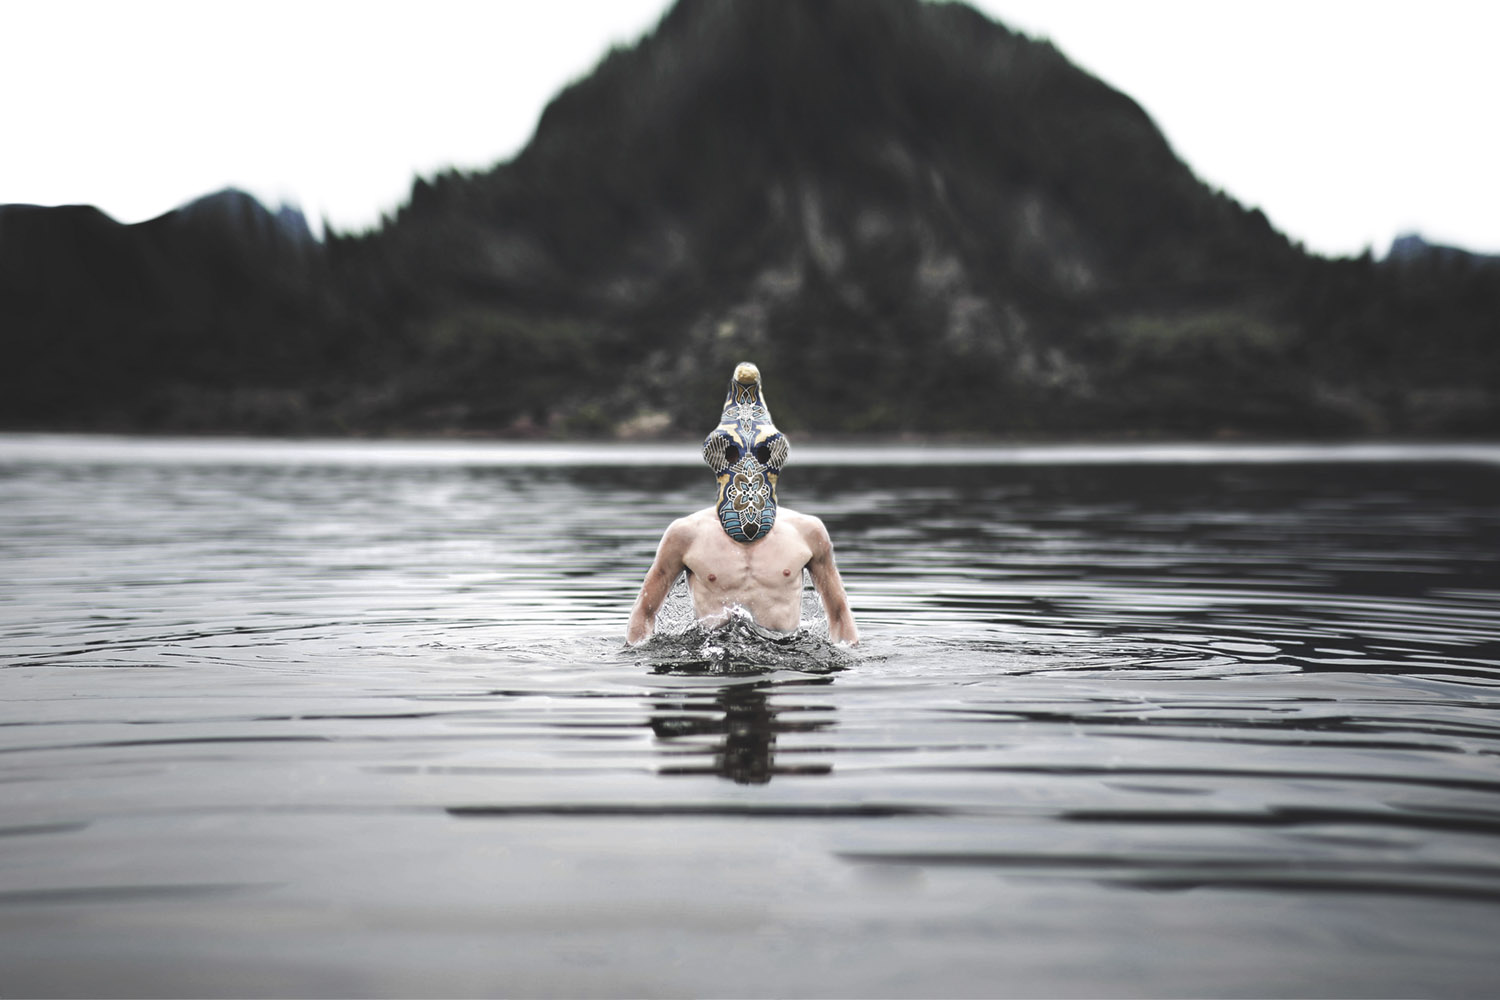 Leonard Condemine - man wearing mask standing in water